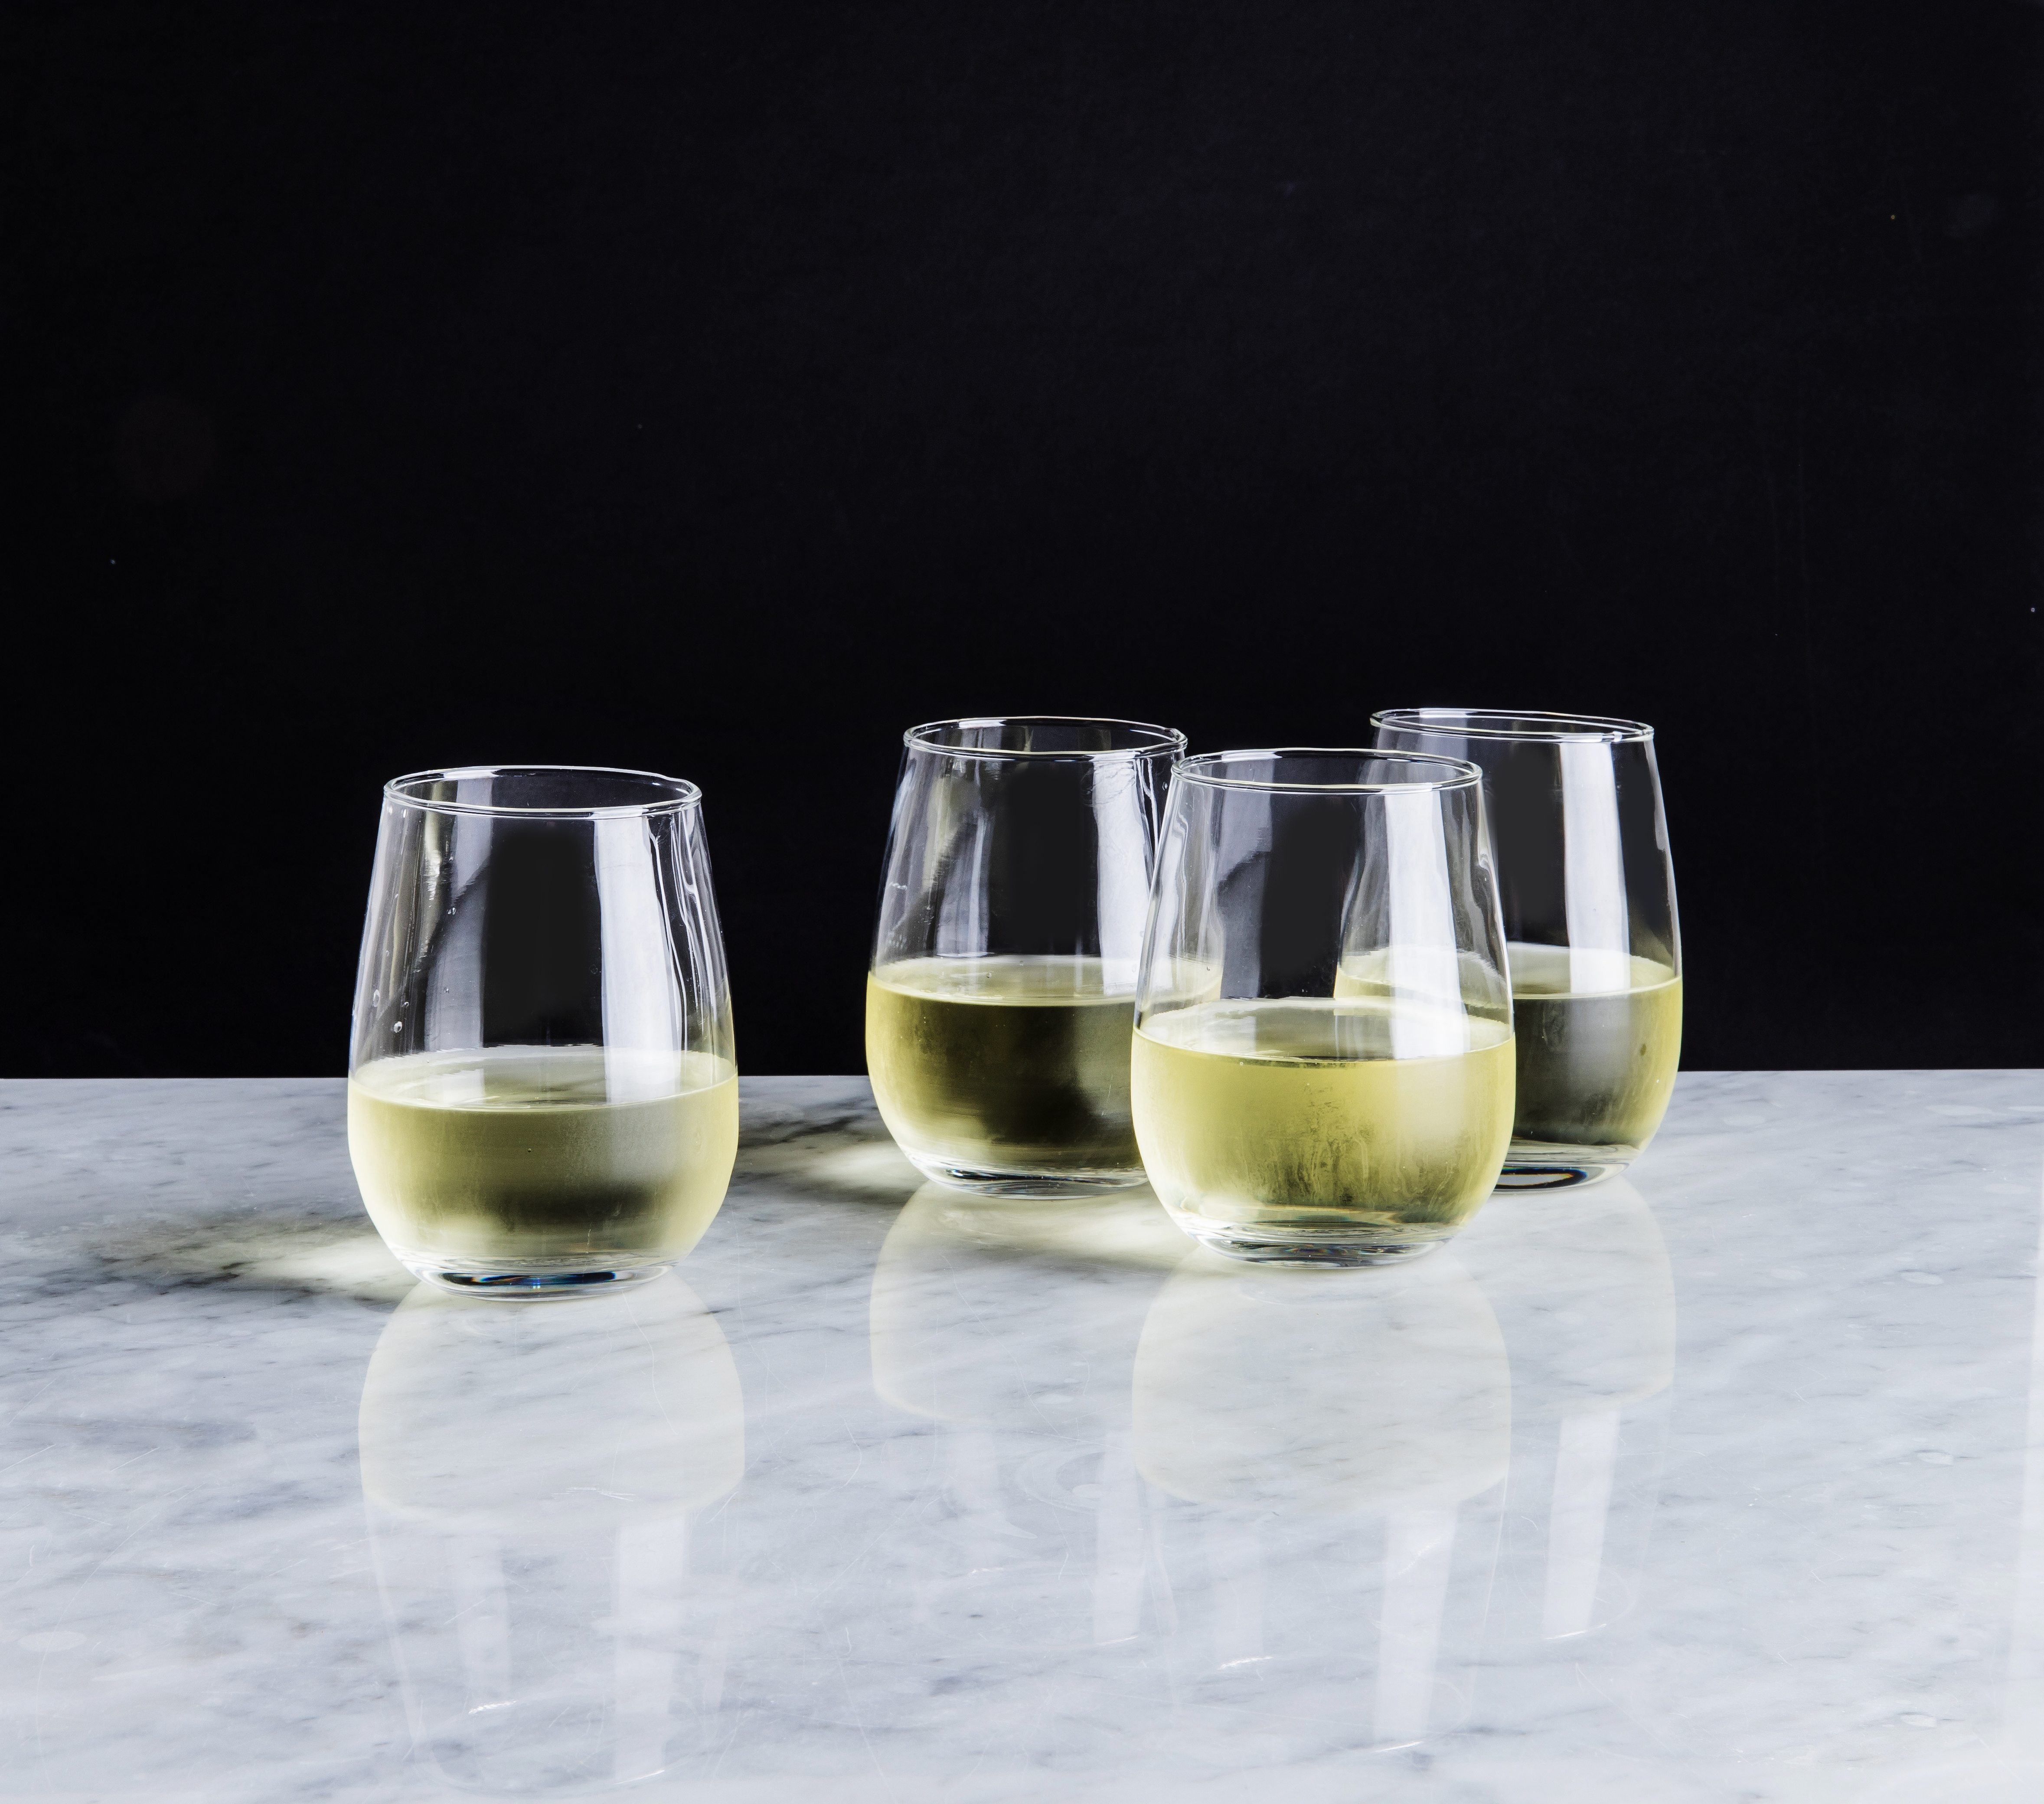 stemless wine glasses filled with white wine